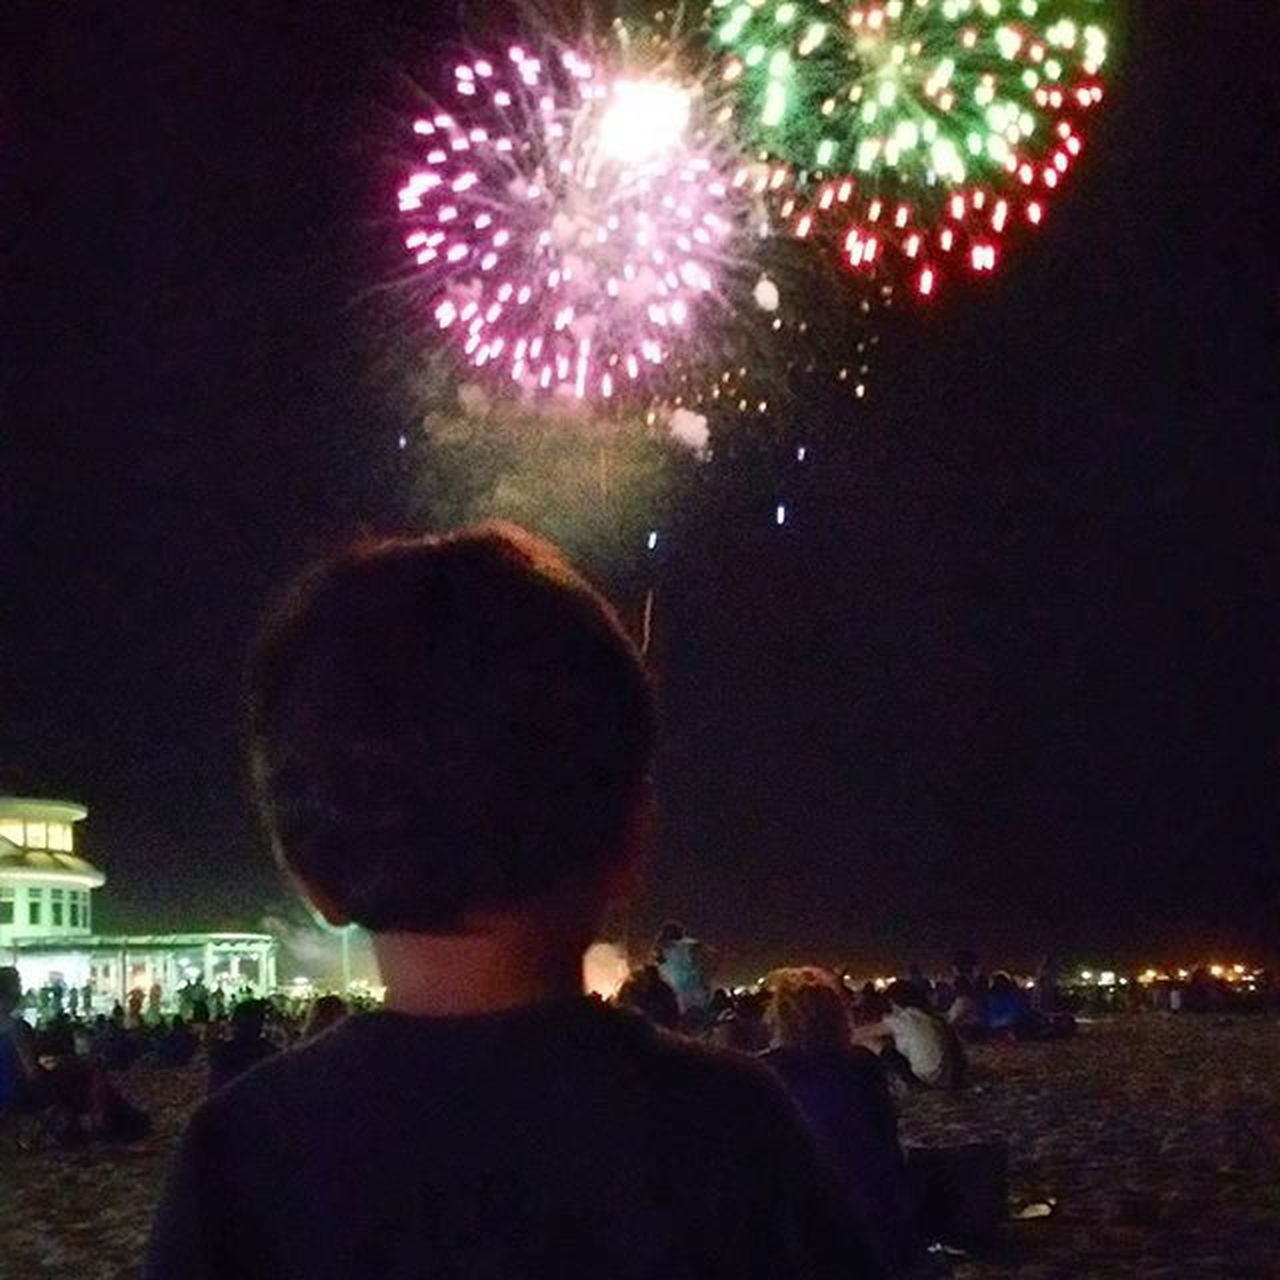 Fireworks fun last night on the beach couldn't be better Wemisstheocean IwantToLiveThere Hamptonbeach